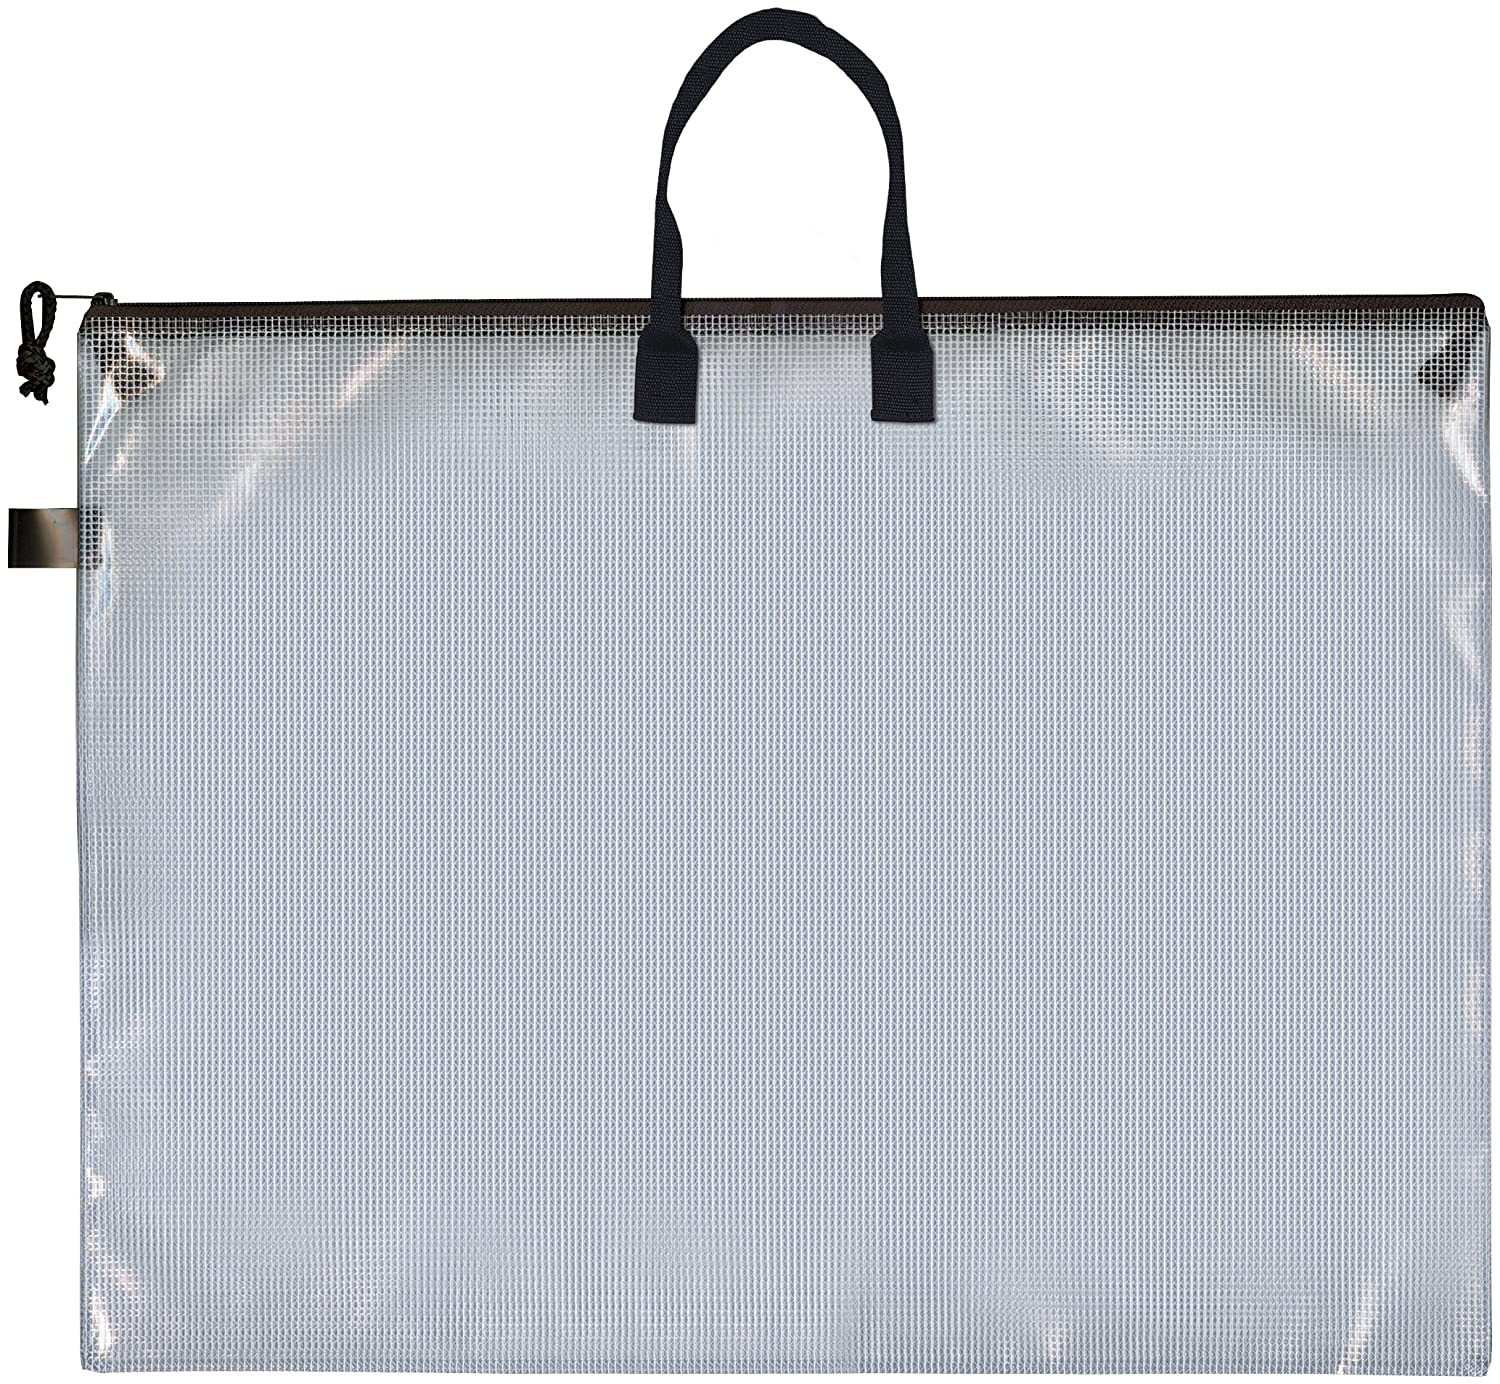 12-by-16 Pro Art Mesh and Vinyl Bag with Handle and Zipper